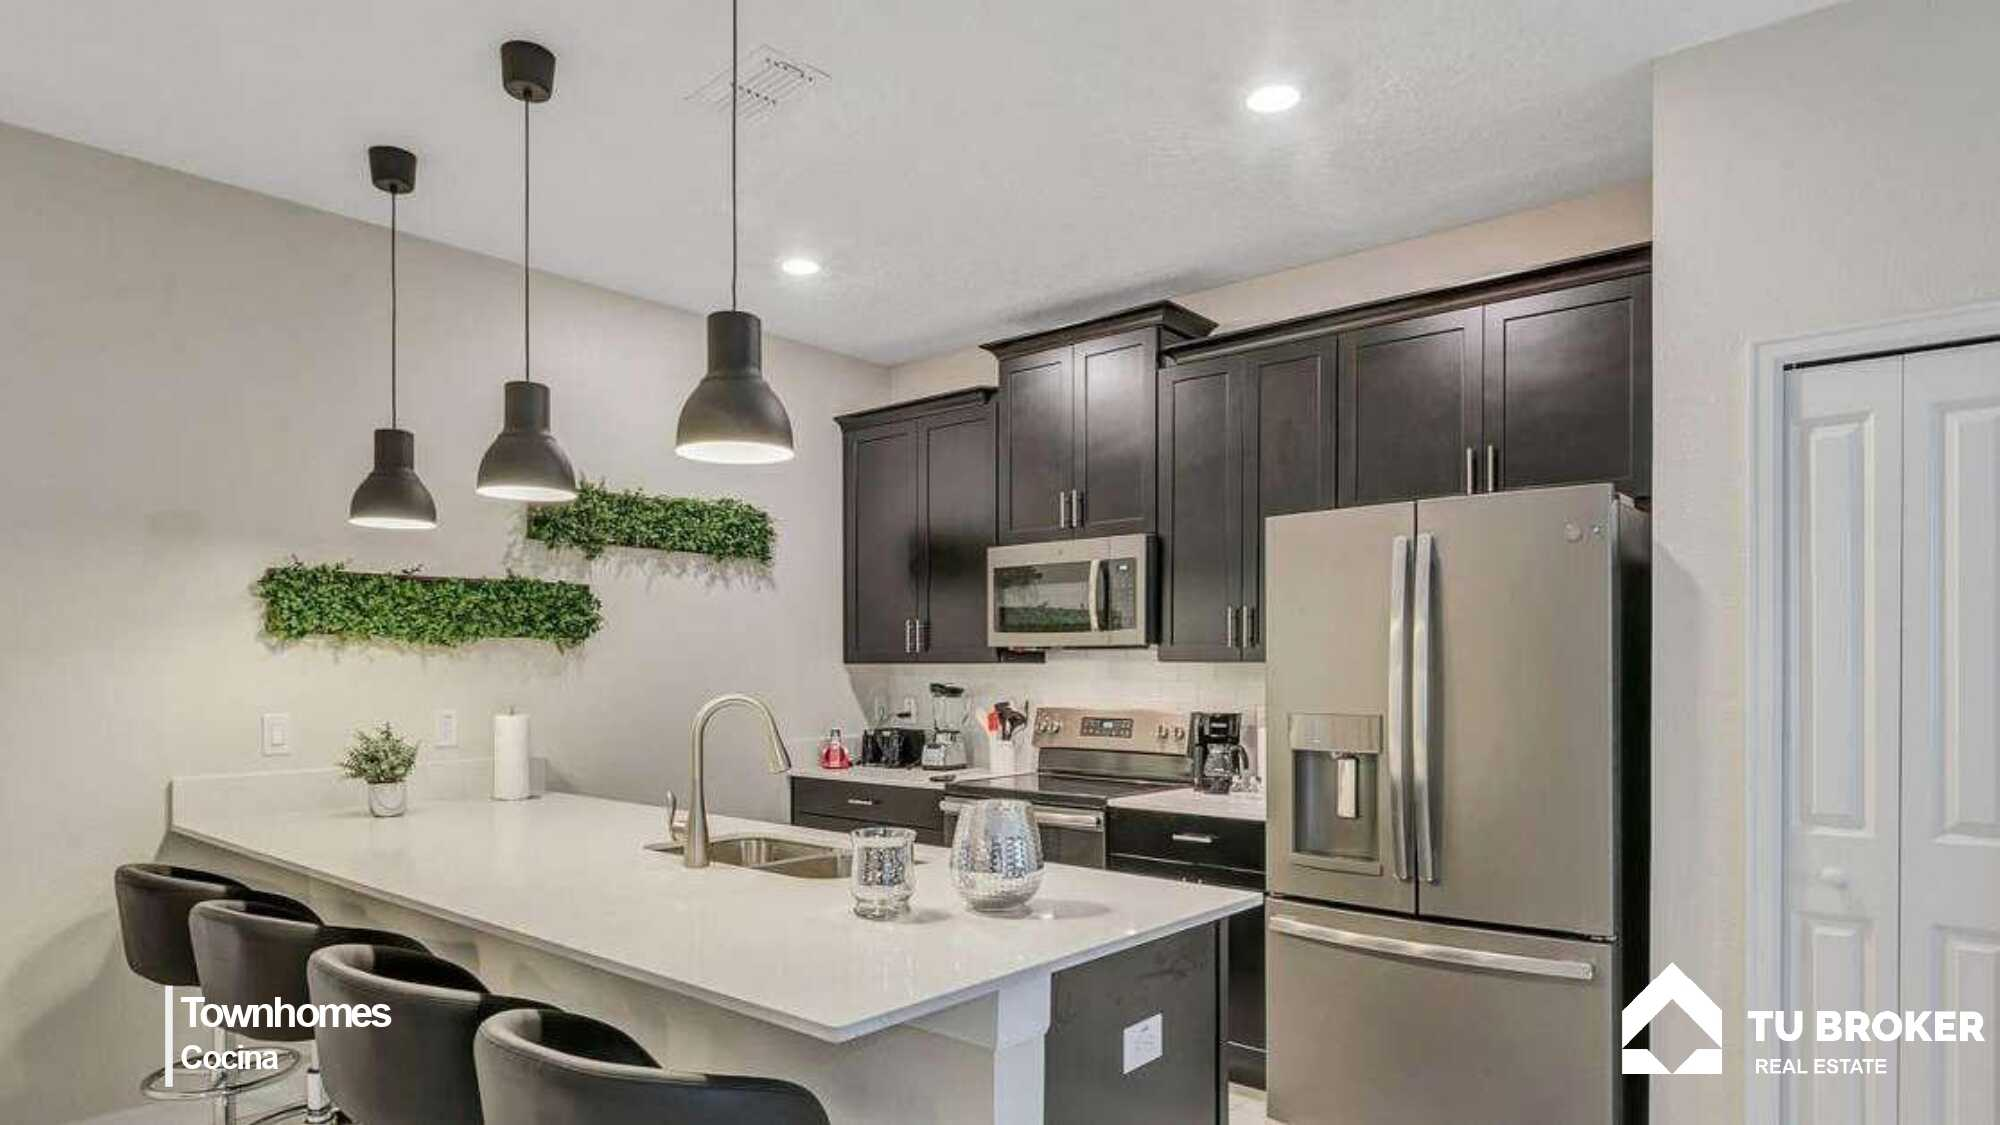 pag-orla-sl-townhomes_compressed-1_page-0020_optimized